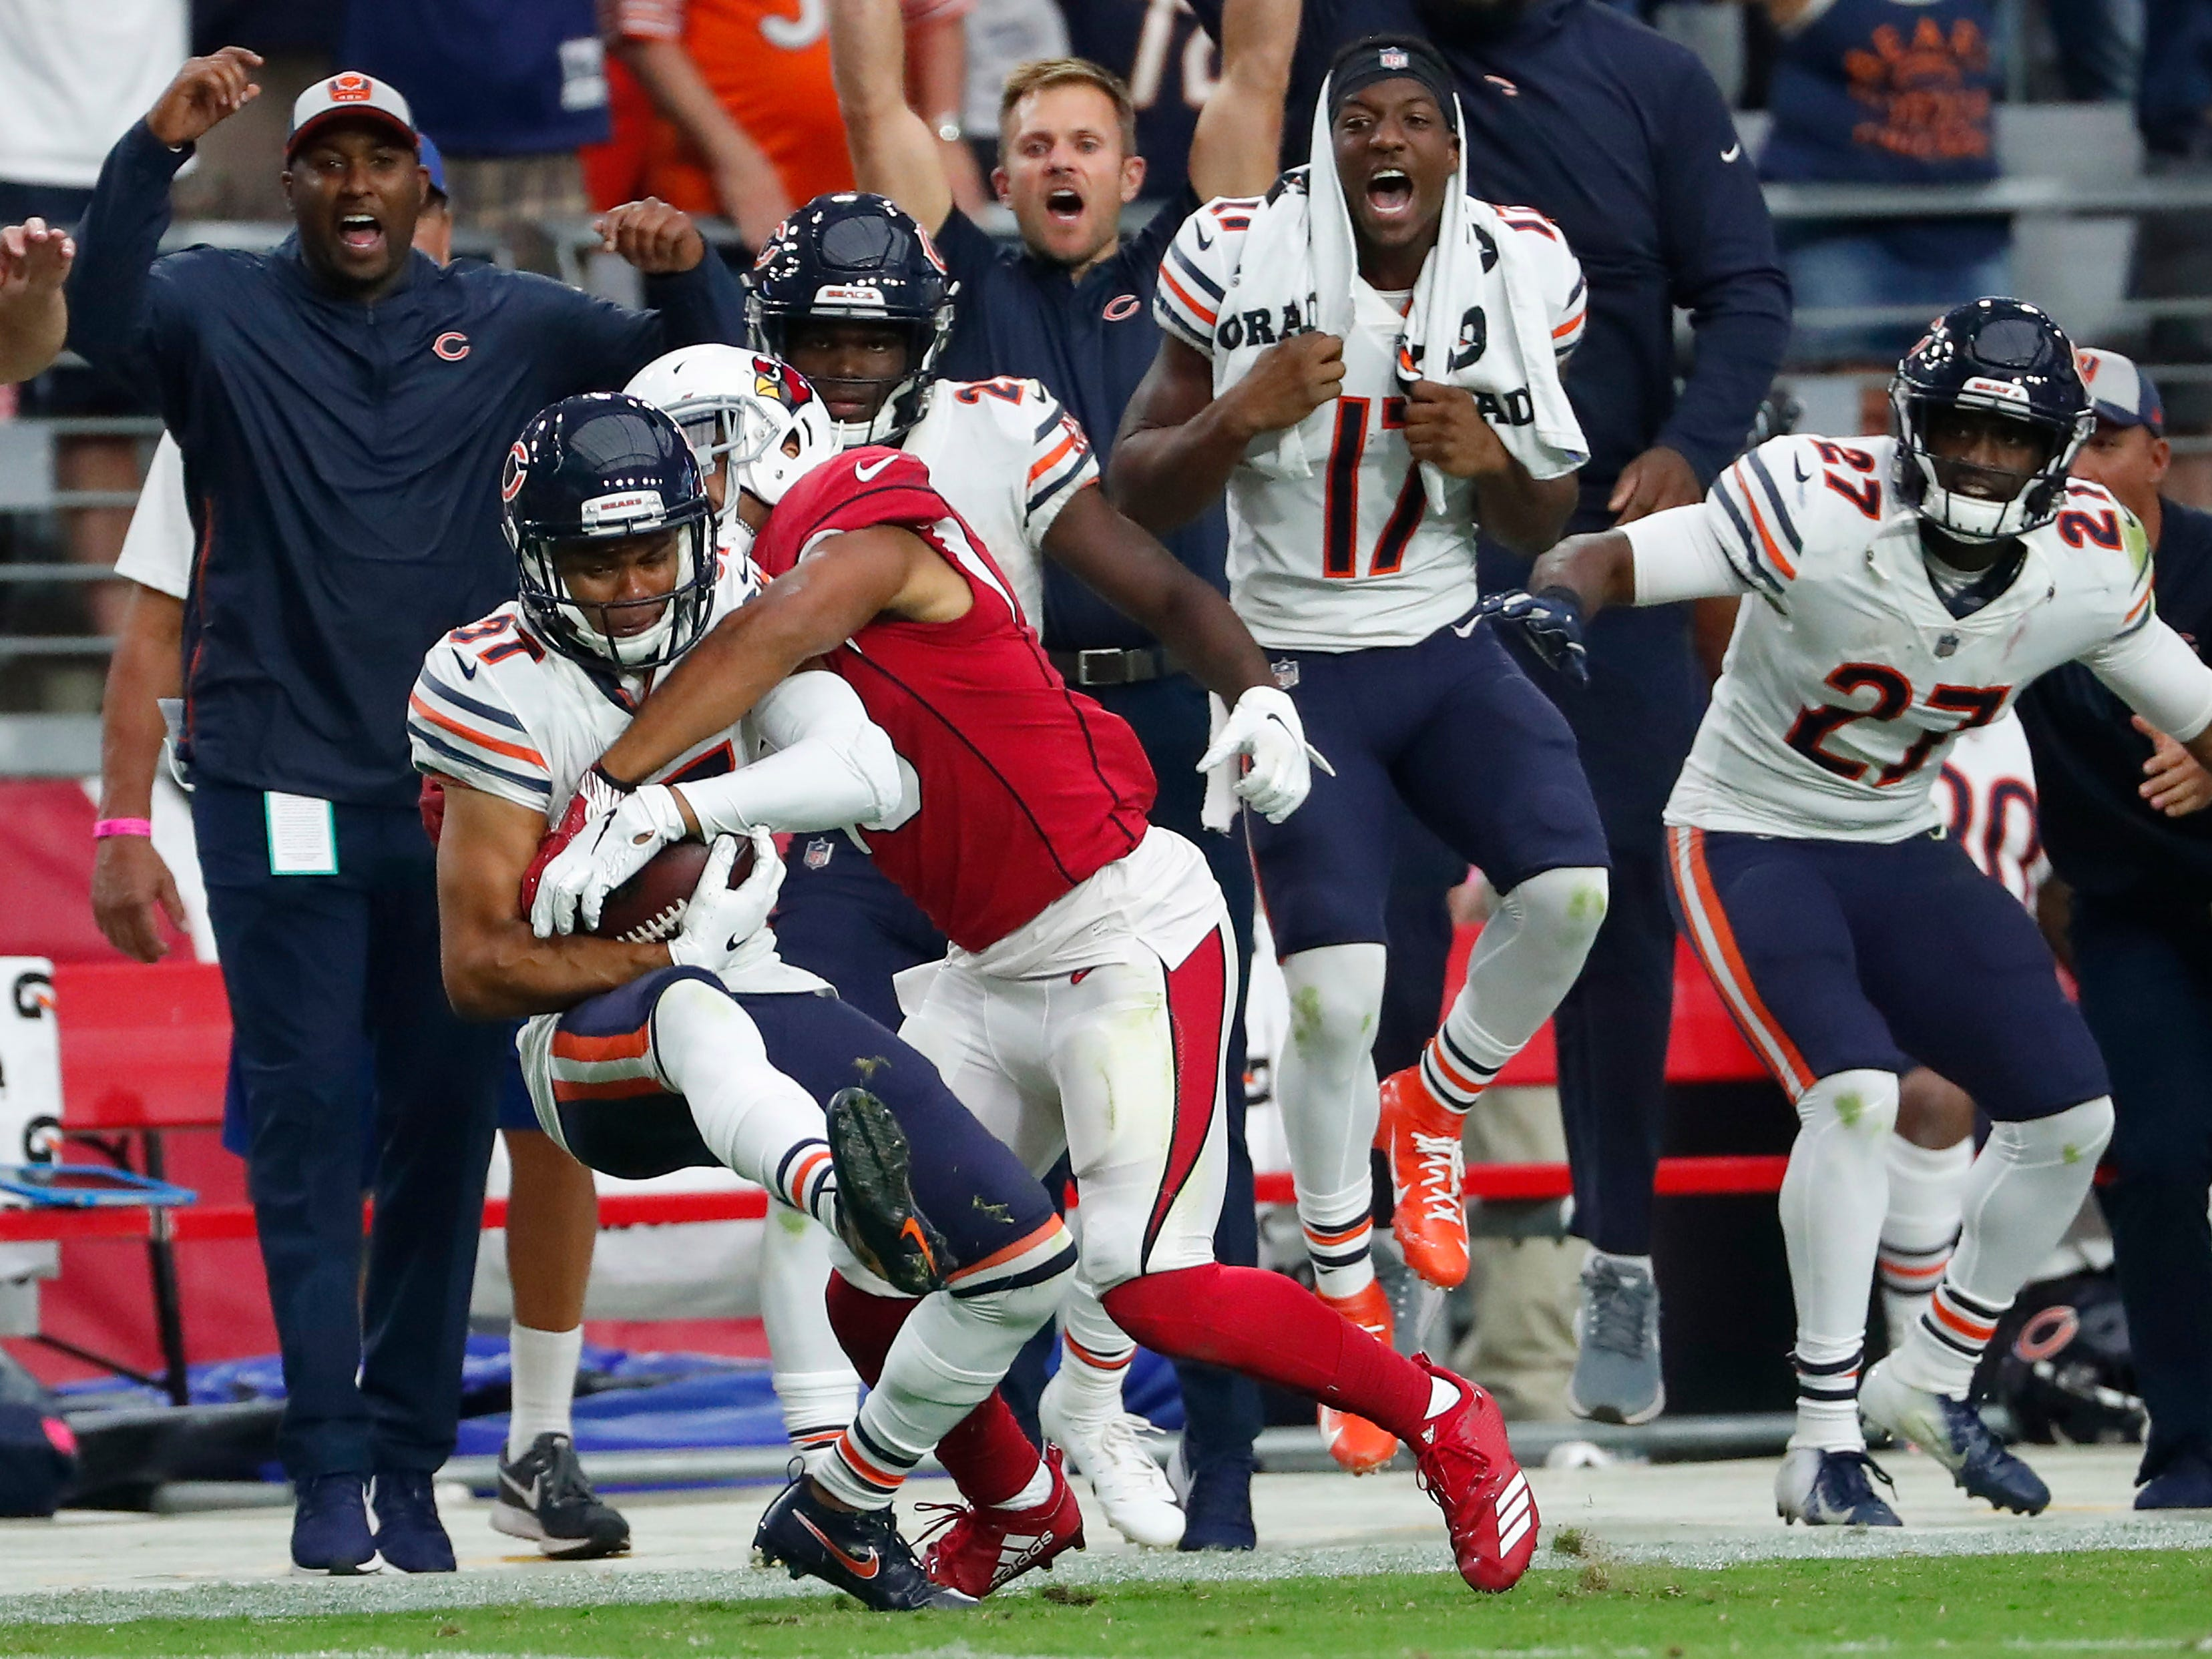 Chicago Bears defensive back Sherrick McManis (27) intercepts a pass by Arizona Cardinals quarterback Josh Rosen (3) intended for wide receiver Christian Kirk (13) during the fourth quarter at State Farm Stadium in Glendale, Ariz. September 23, 2018.